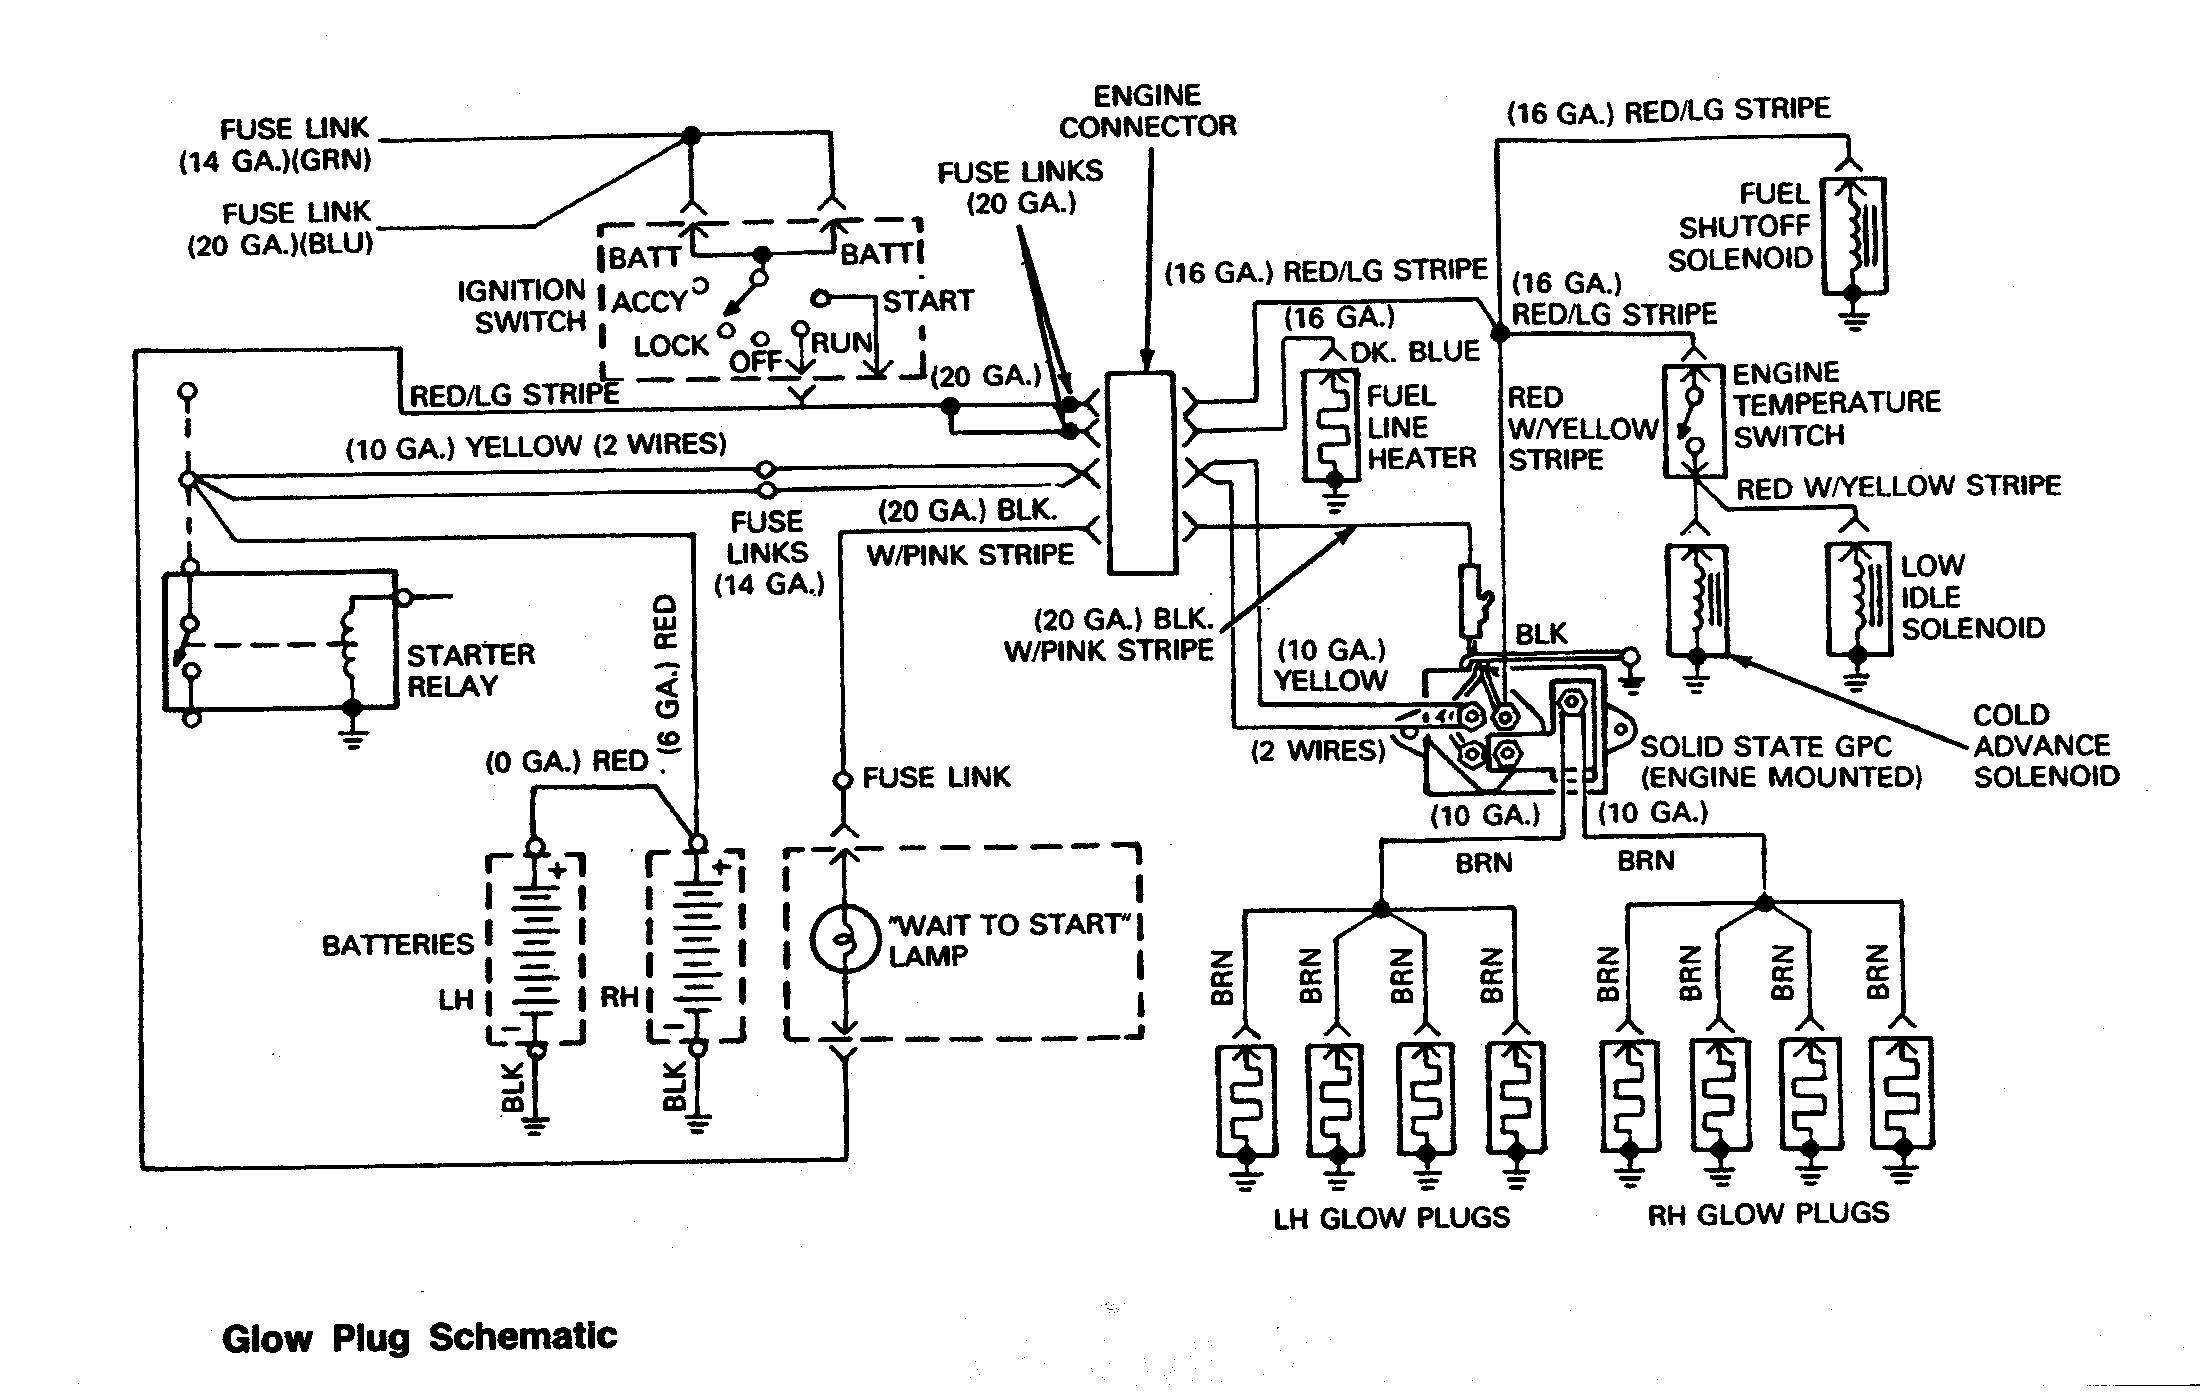 engine_glow_plug looking for wiring boat stereo diagram ~ olane angler 22 boat wiring diagram at n-0.co